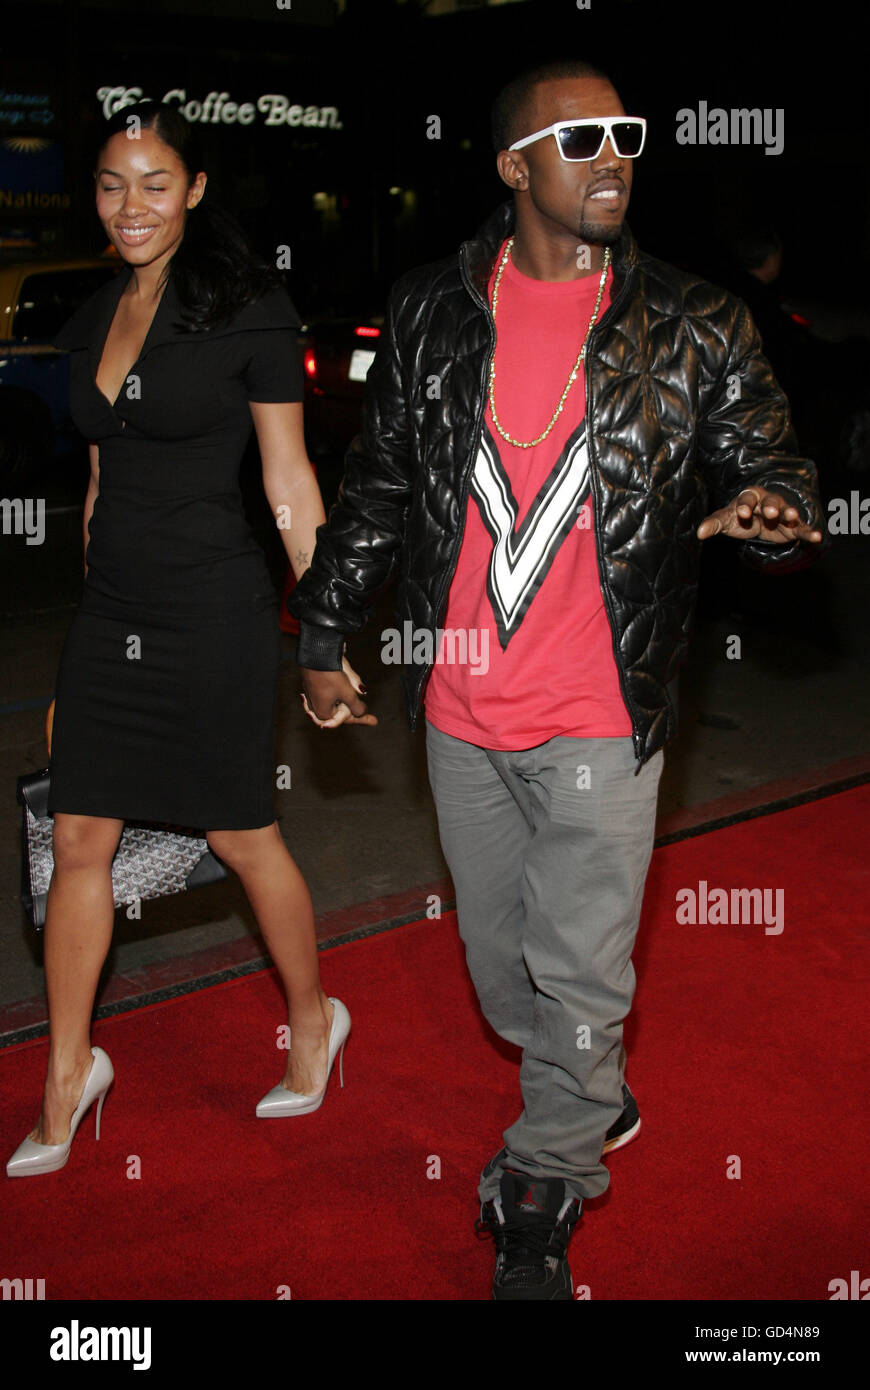 Kanye West at the LA premiere of 'Smokin' Aces' held at the Grauman's Chinese Theatre in Hollywood, - Stock Image